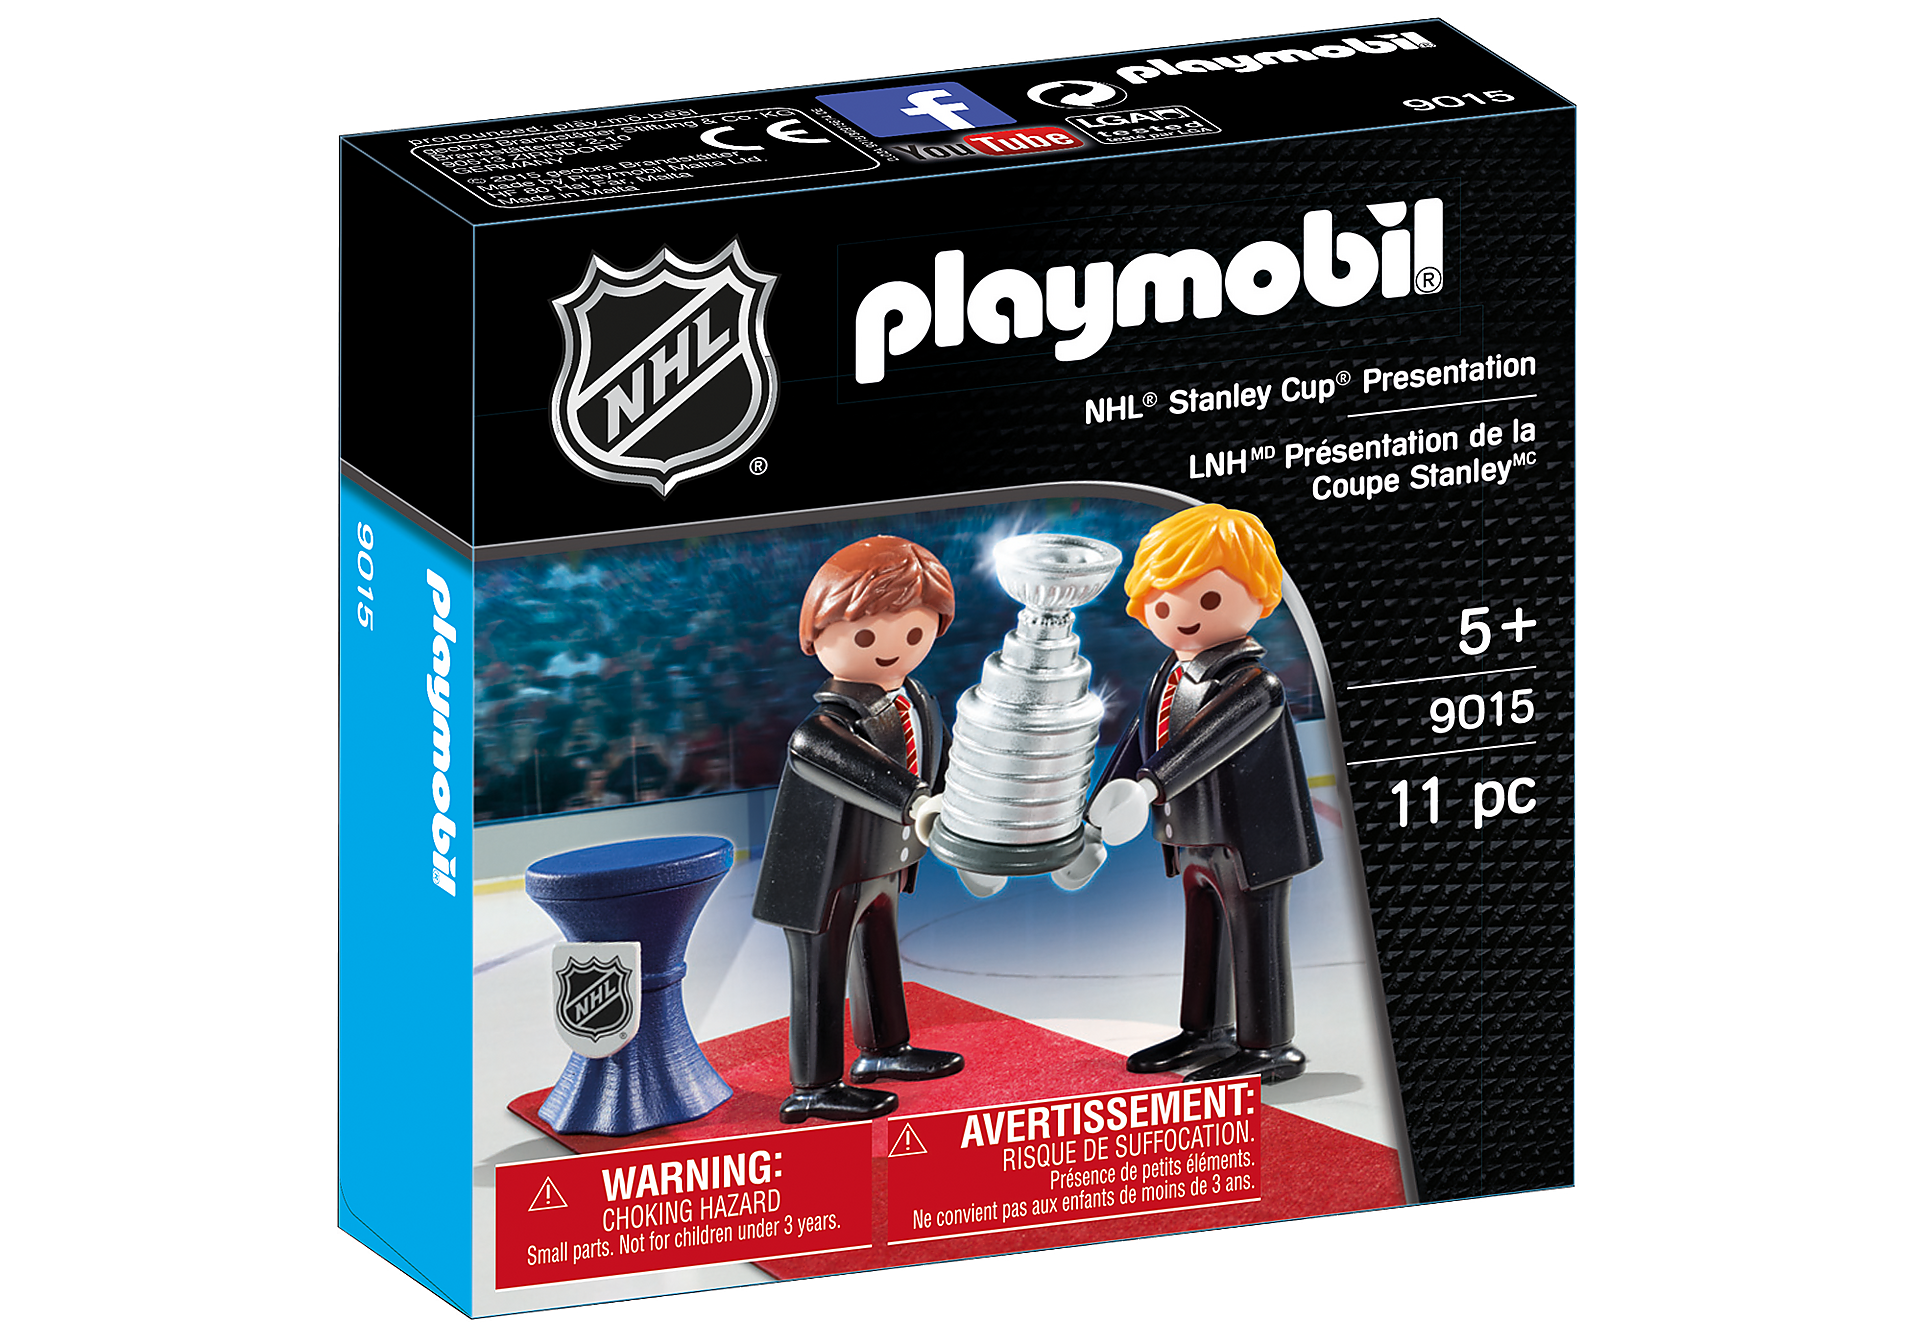 http://media.playmobil.com/i/playmobil/9015_product_box_front/NHL® Stanley Cup® presentation set